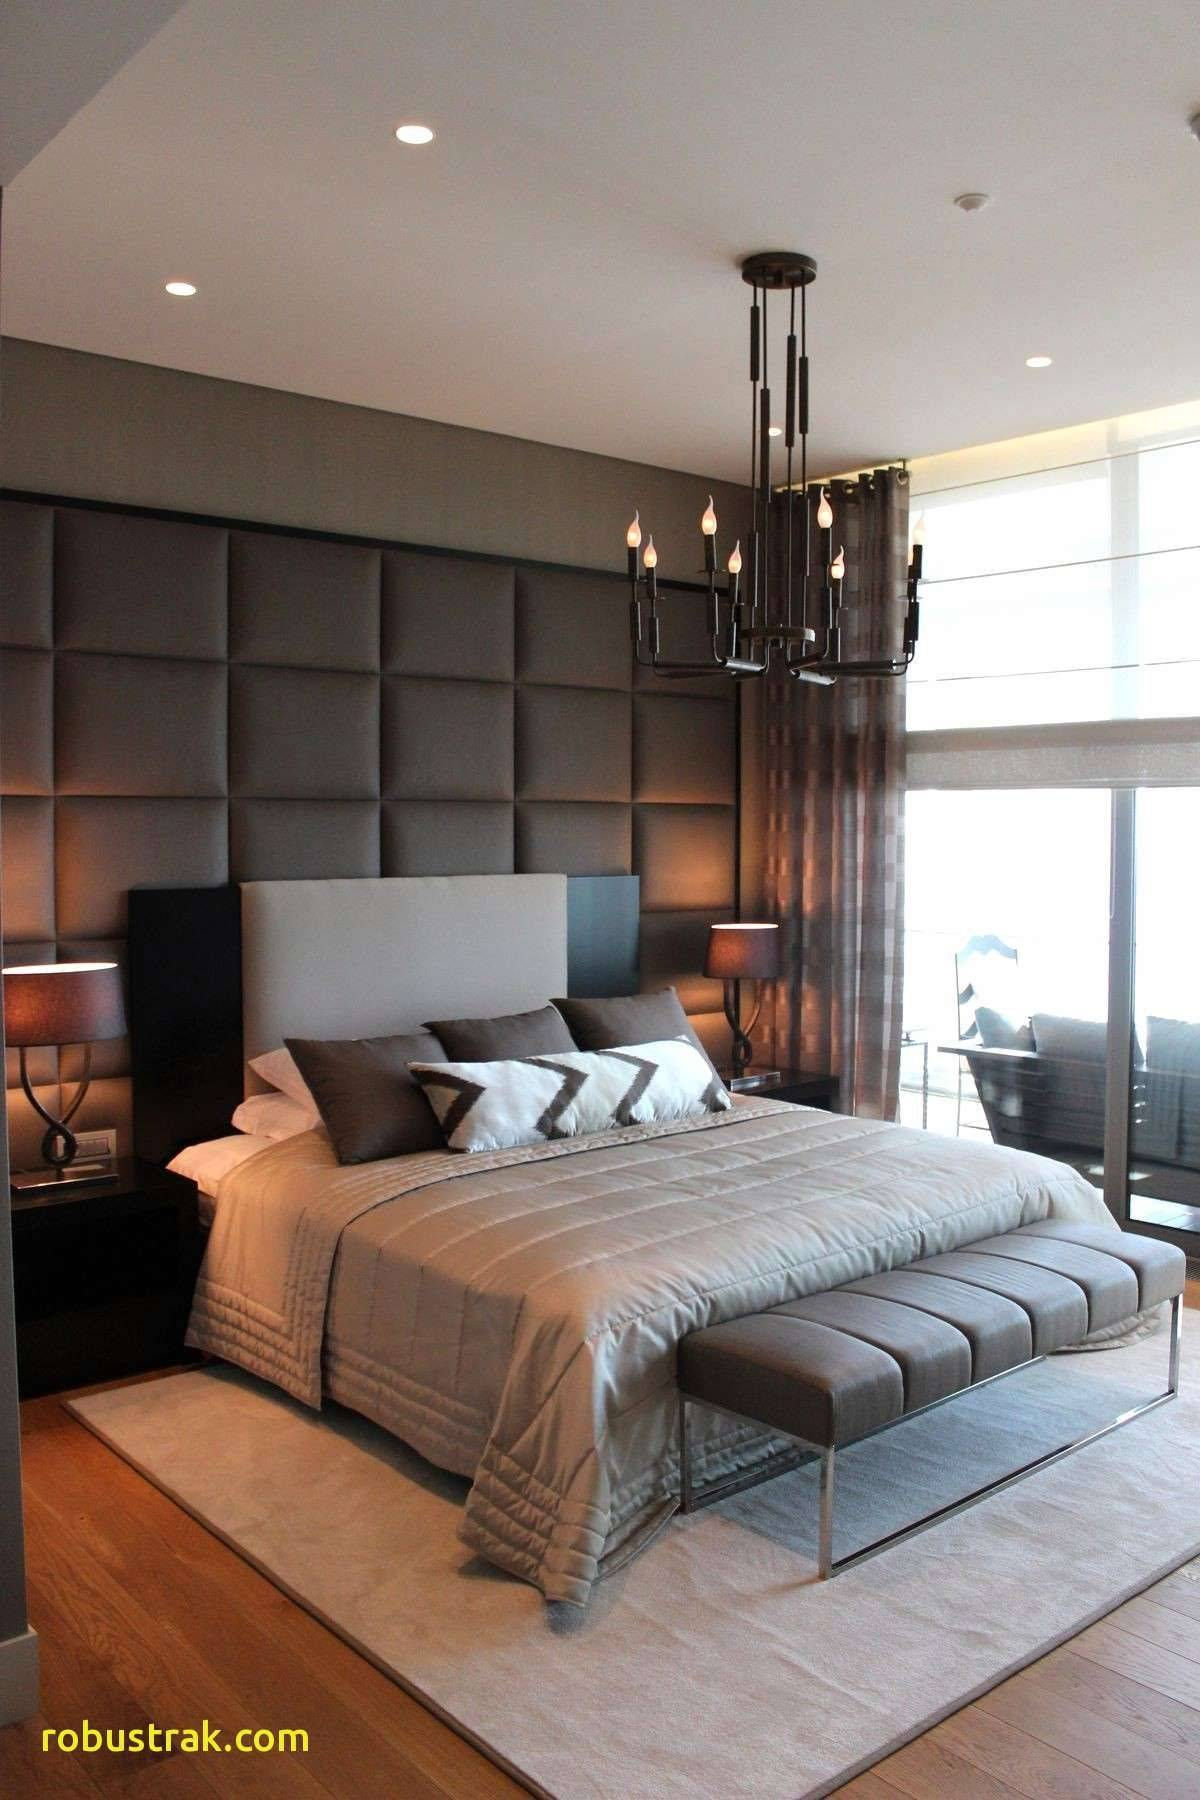 modern bedroom ideas for small rooms elegant design bedroom wall lovely media cache ec0 pinimg 1200x 03 01 0d of modern bedroom ideas for small rooms